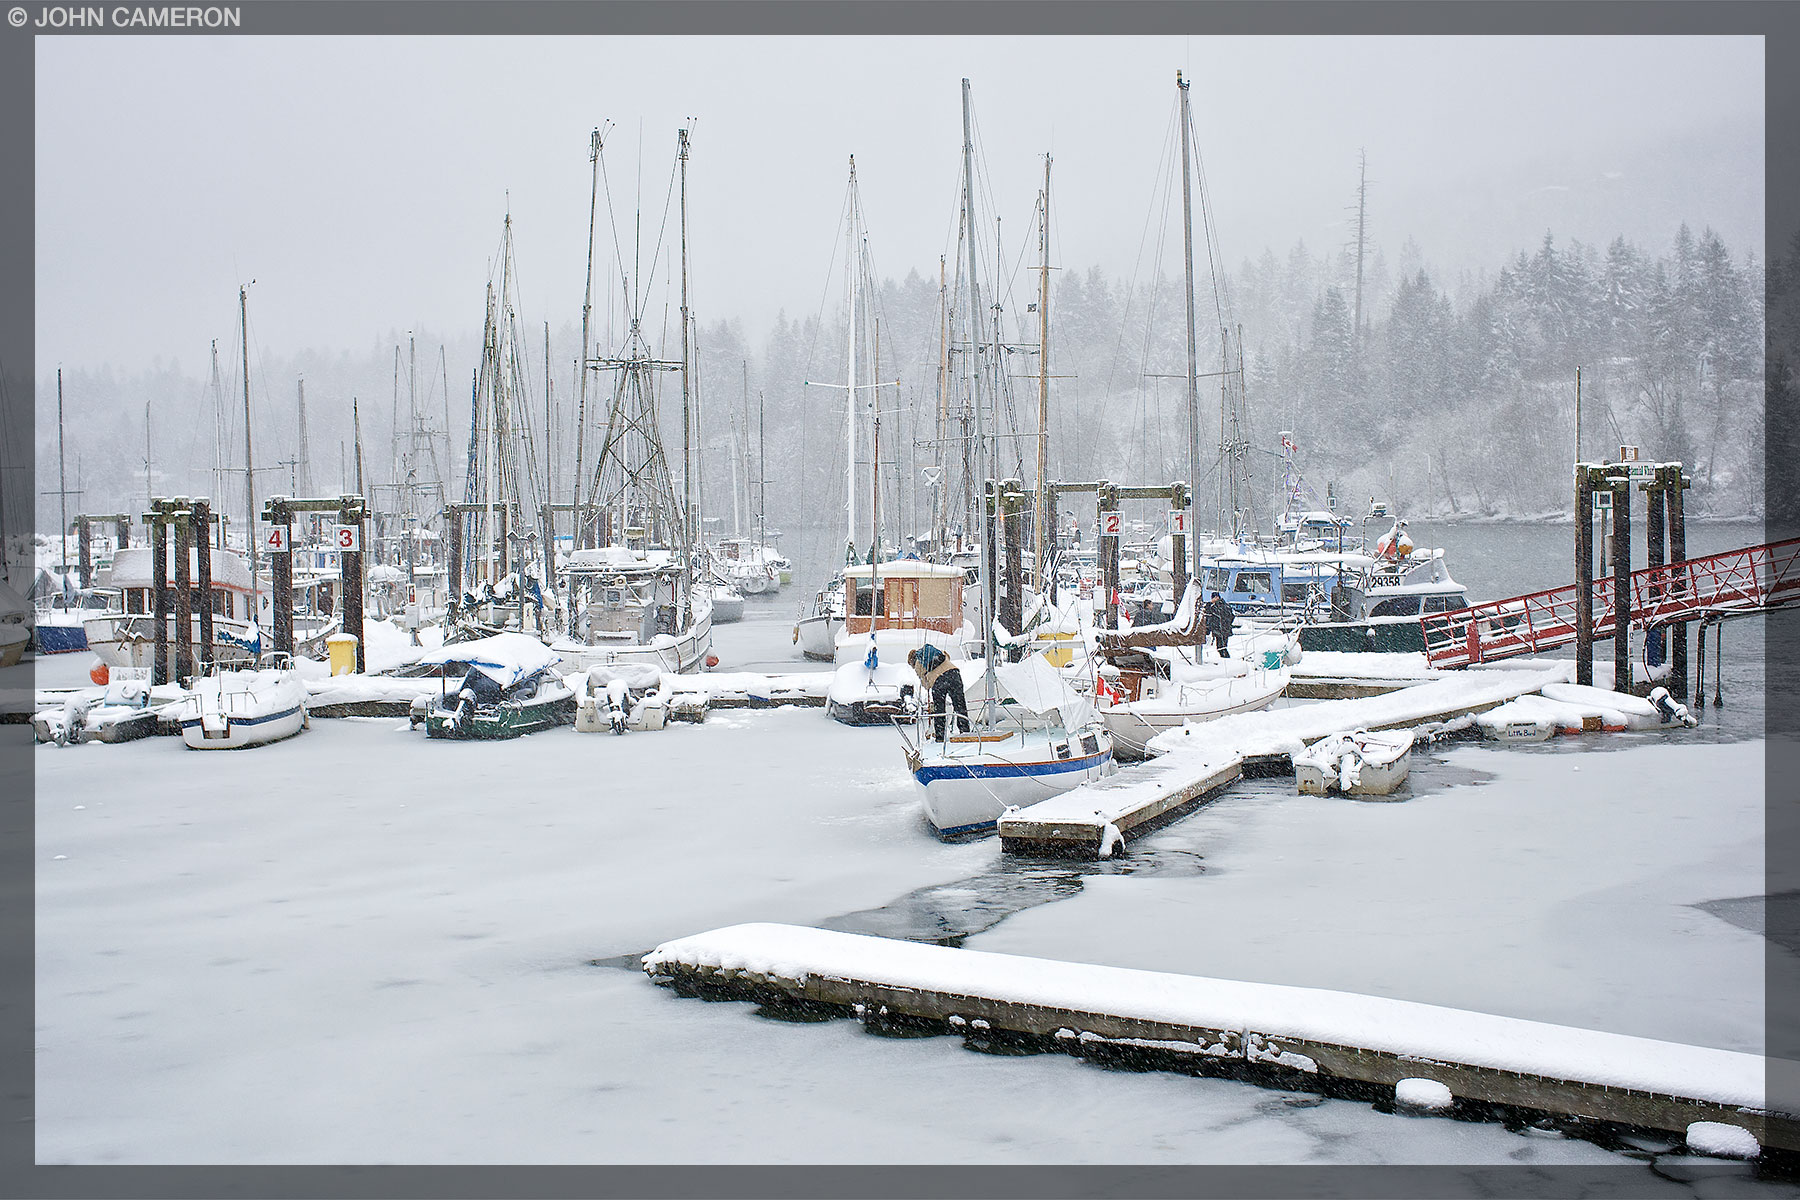 Snow on Salt Spring Island